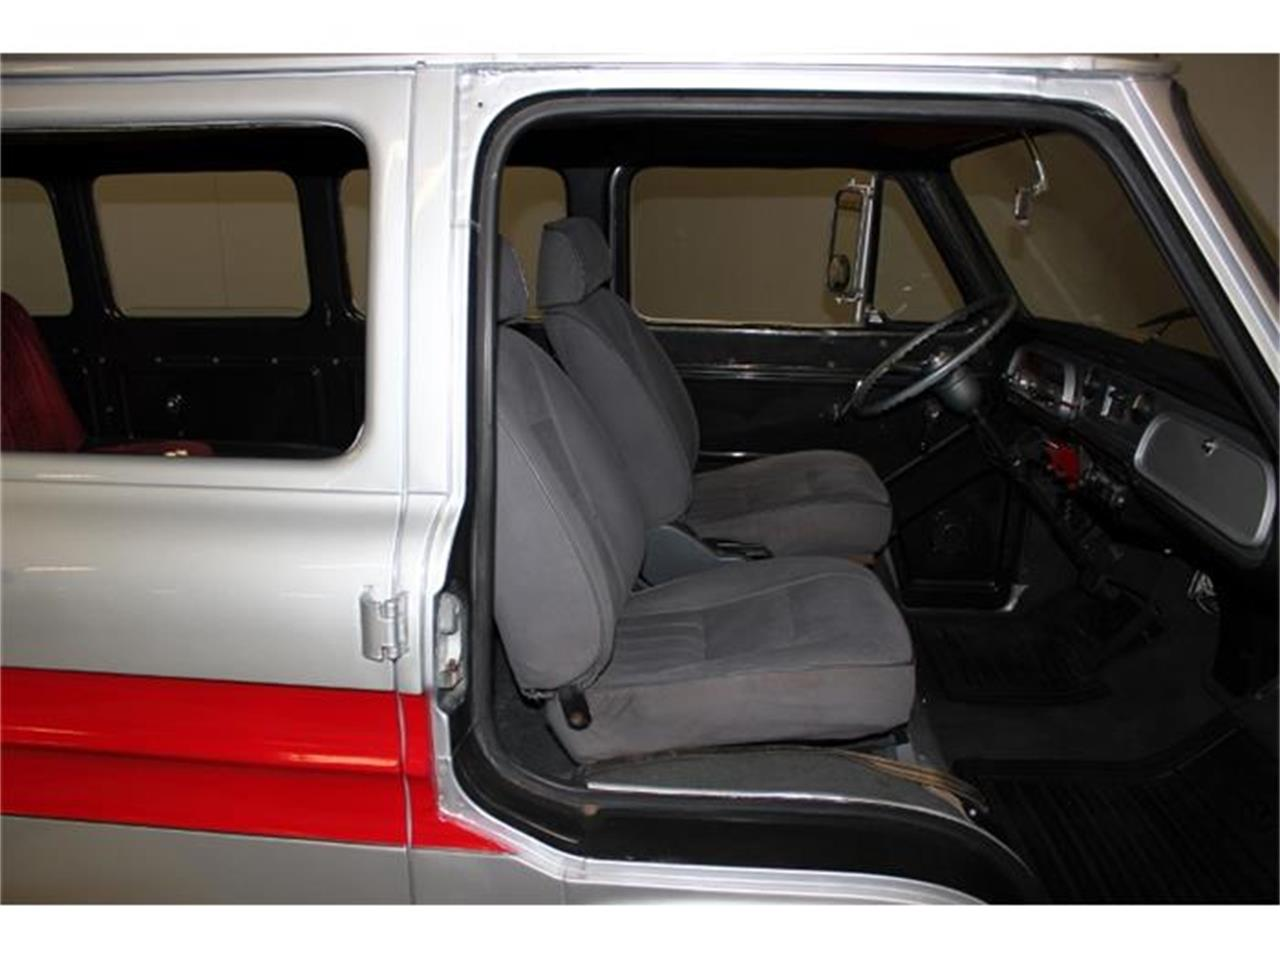 Large Picture of Classic 1961 Chevrolet Van located in Lillington North Carolina Offered by East Coast Classic Cars - F258